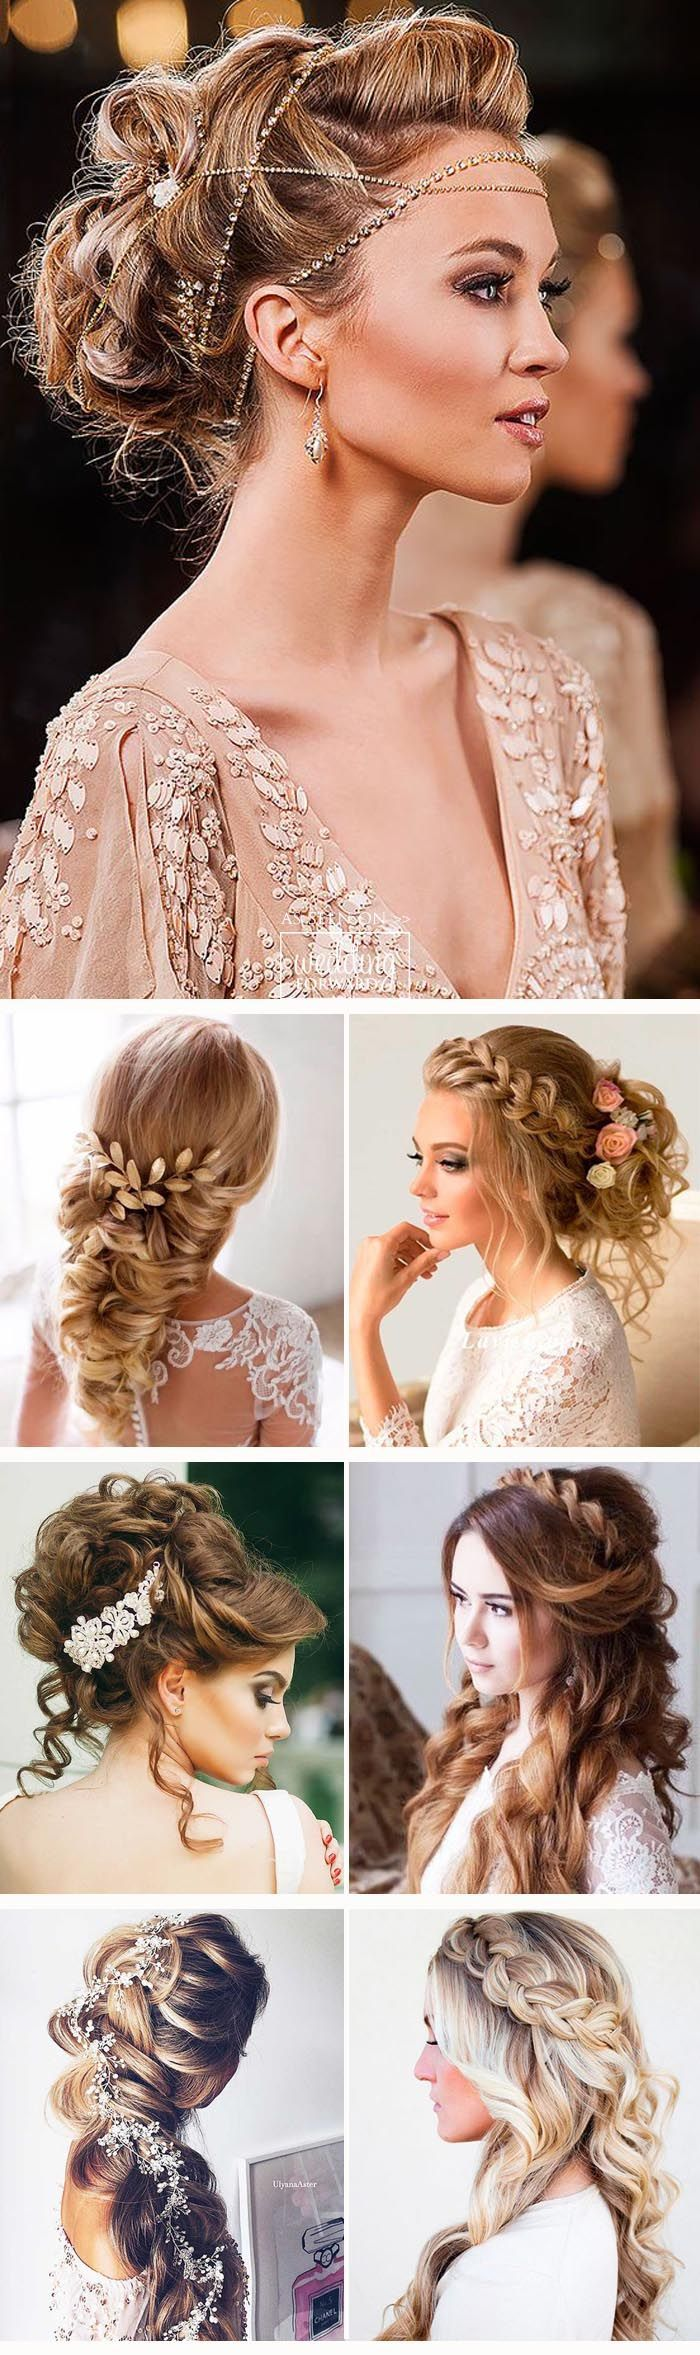 You will be center of attractions for any gatherings with plenty of beckoning hairstyle ideas to choose from!